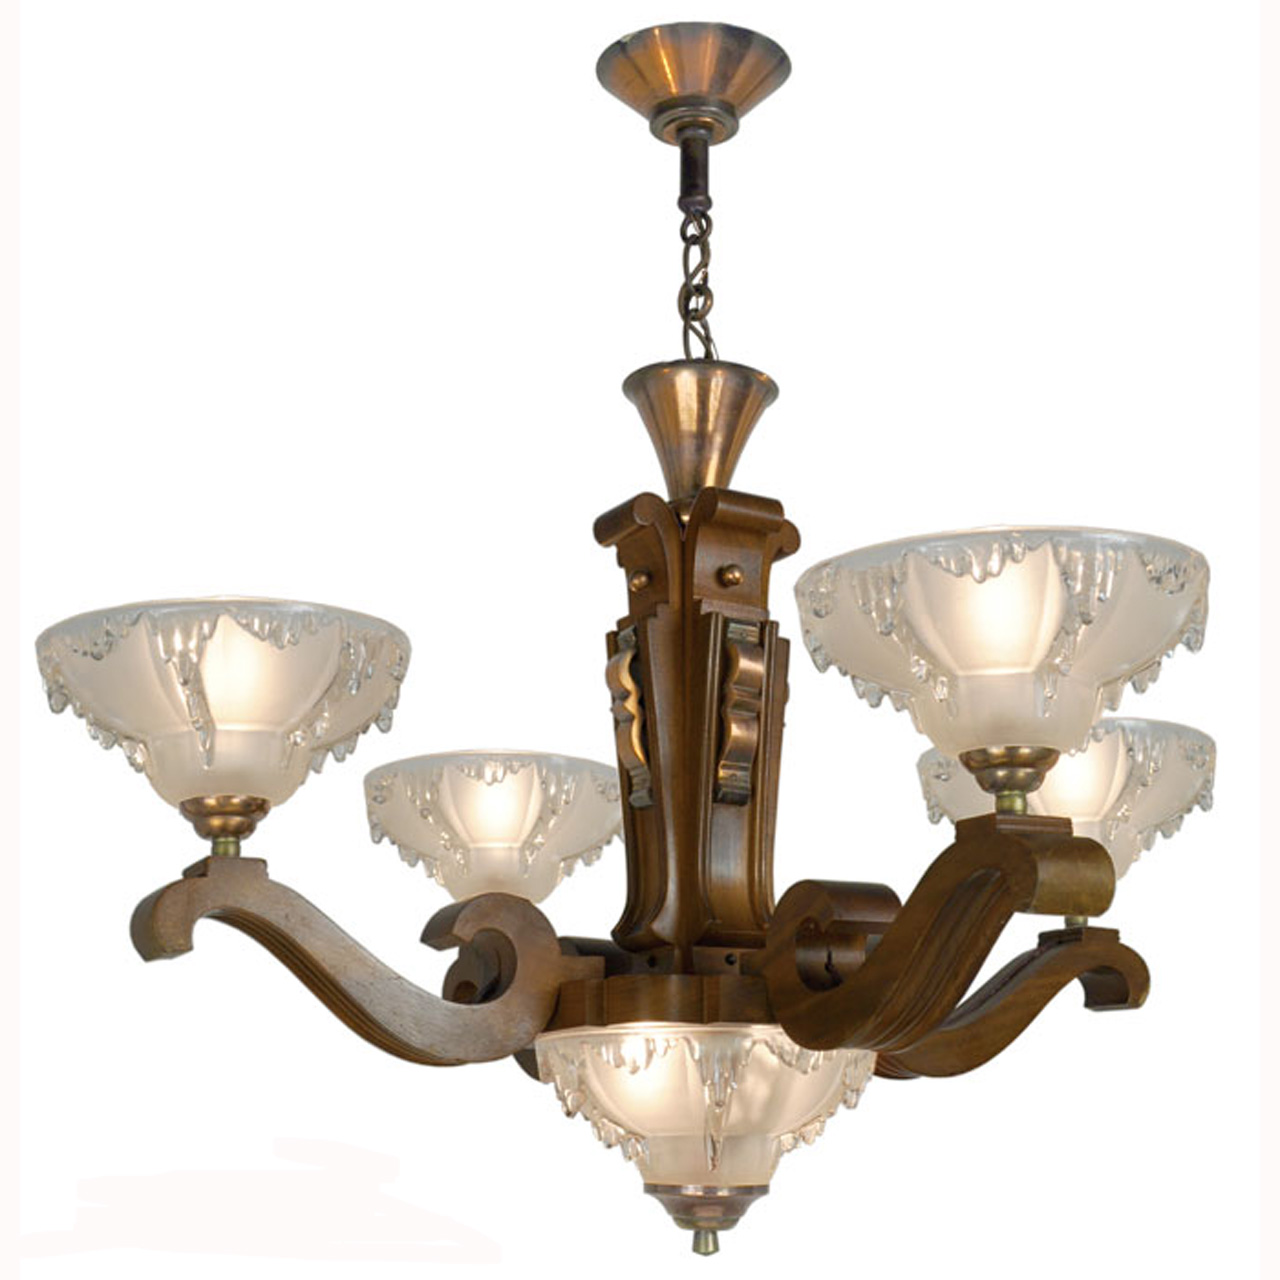 art deco french ezan style icicle chandelier with 4 arm wooden body ant 389 for sale. Black Bedroom Furniture Sets. Home Design Ideas